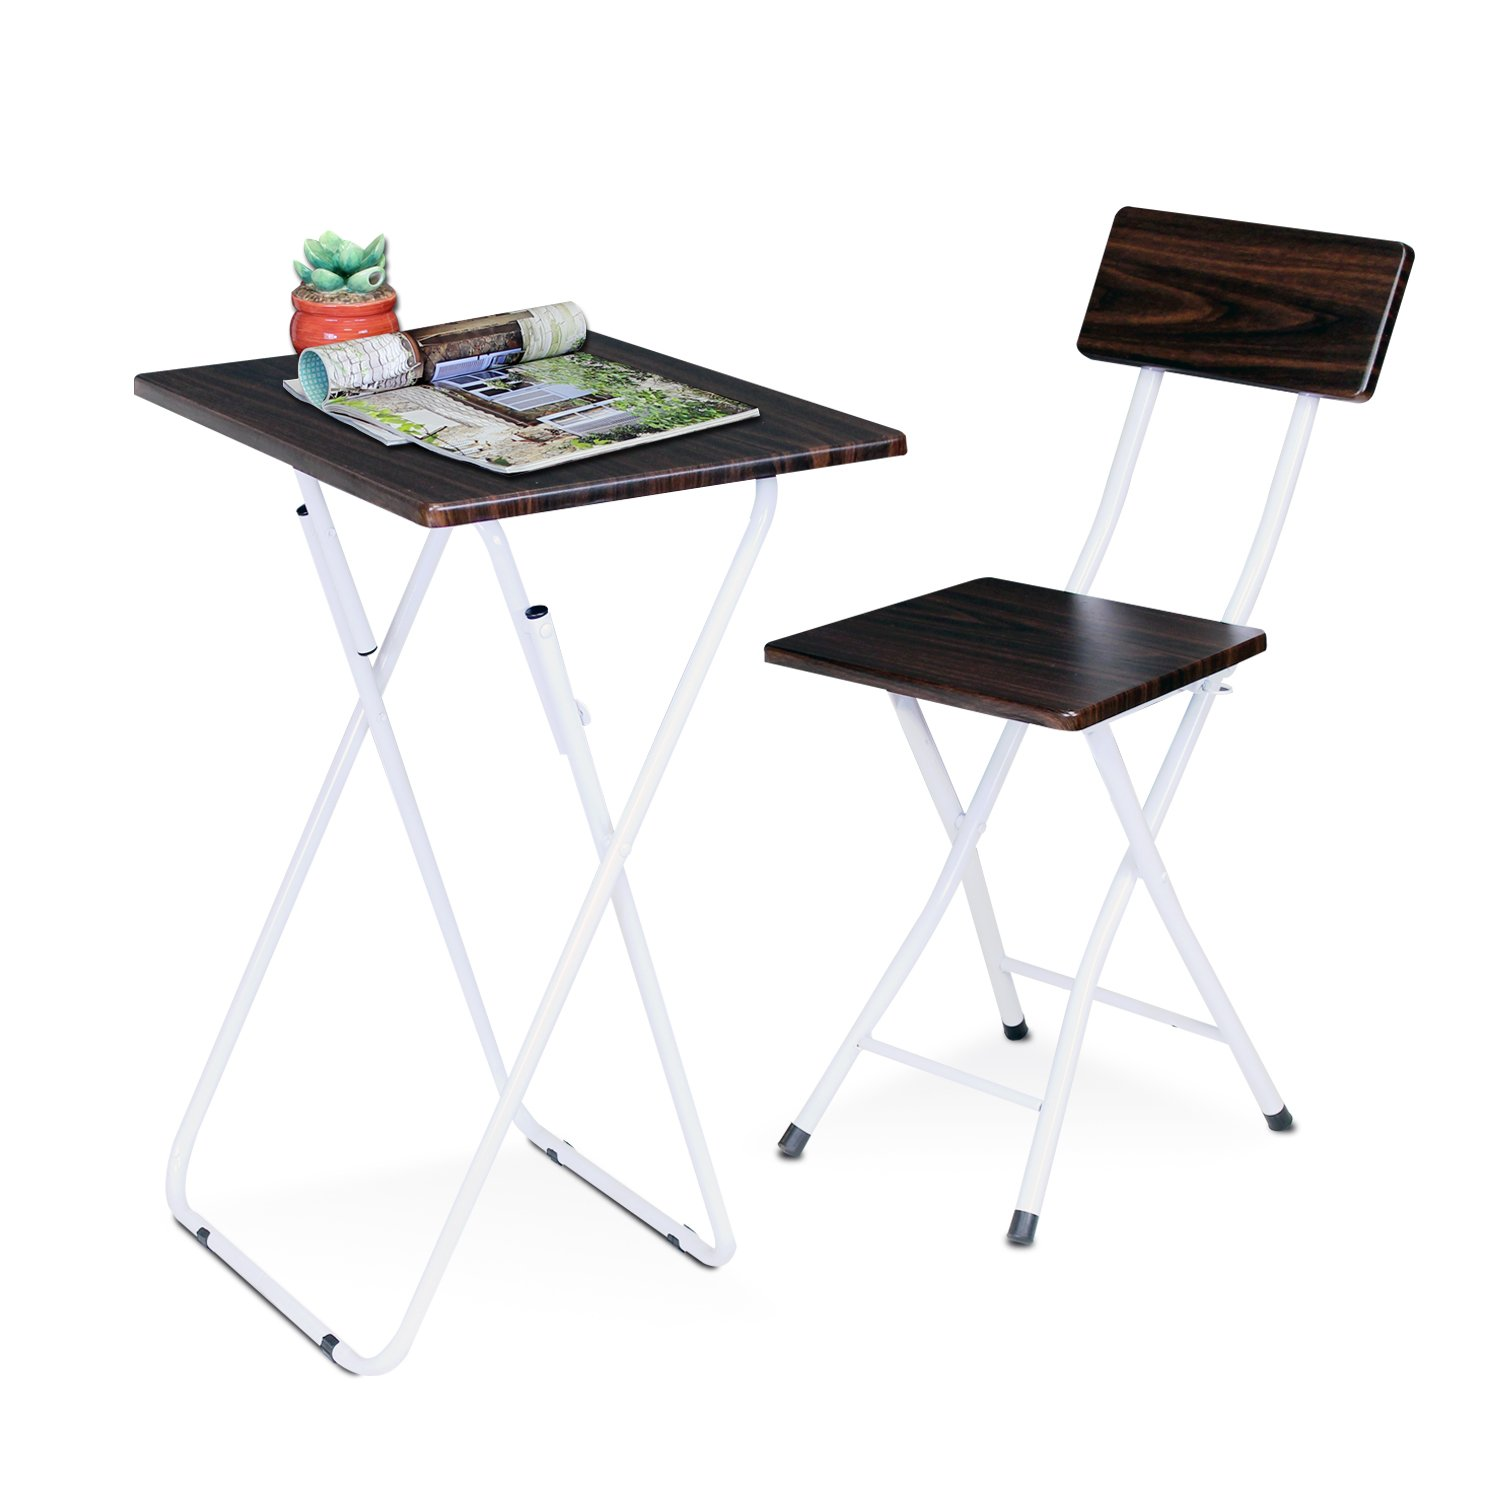 space saving folding furniture. Amazon.com: Furinno FNBM-22110EX Space Saving Study Desk And Chair Set: Kitchen \u0026 Dining Folding Furniture